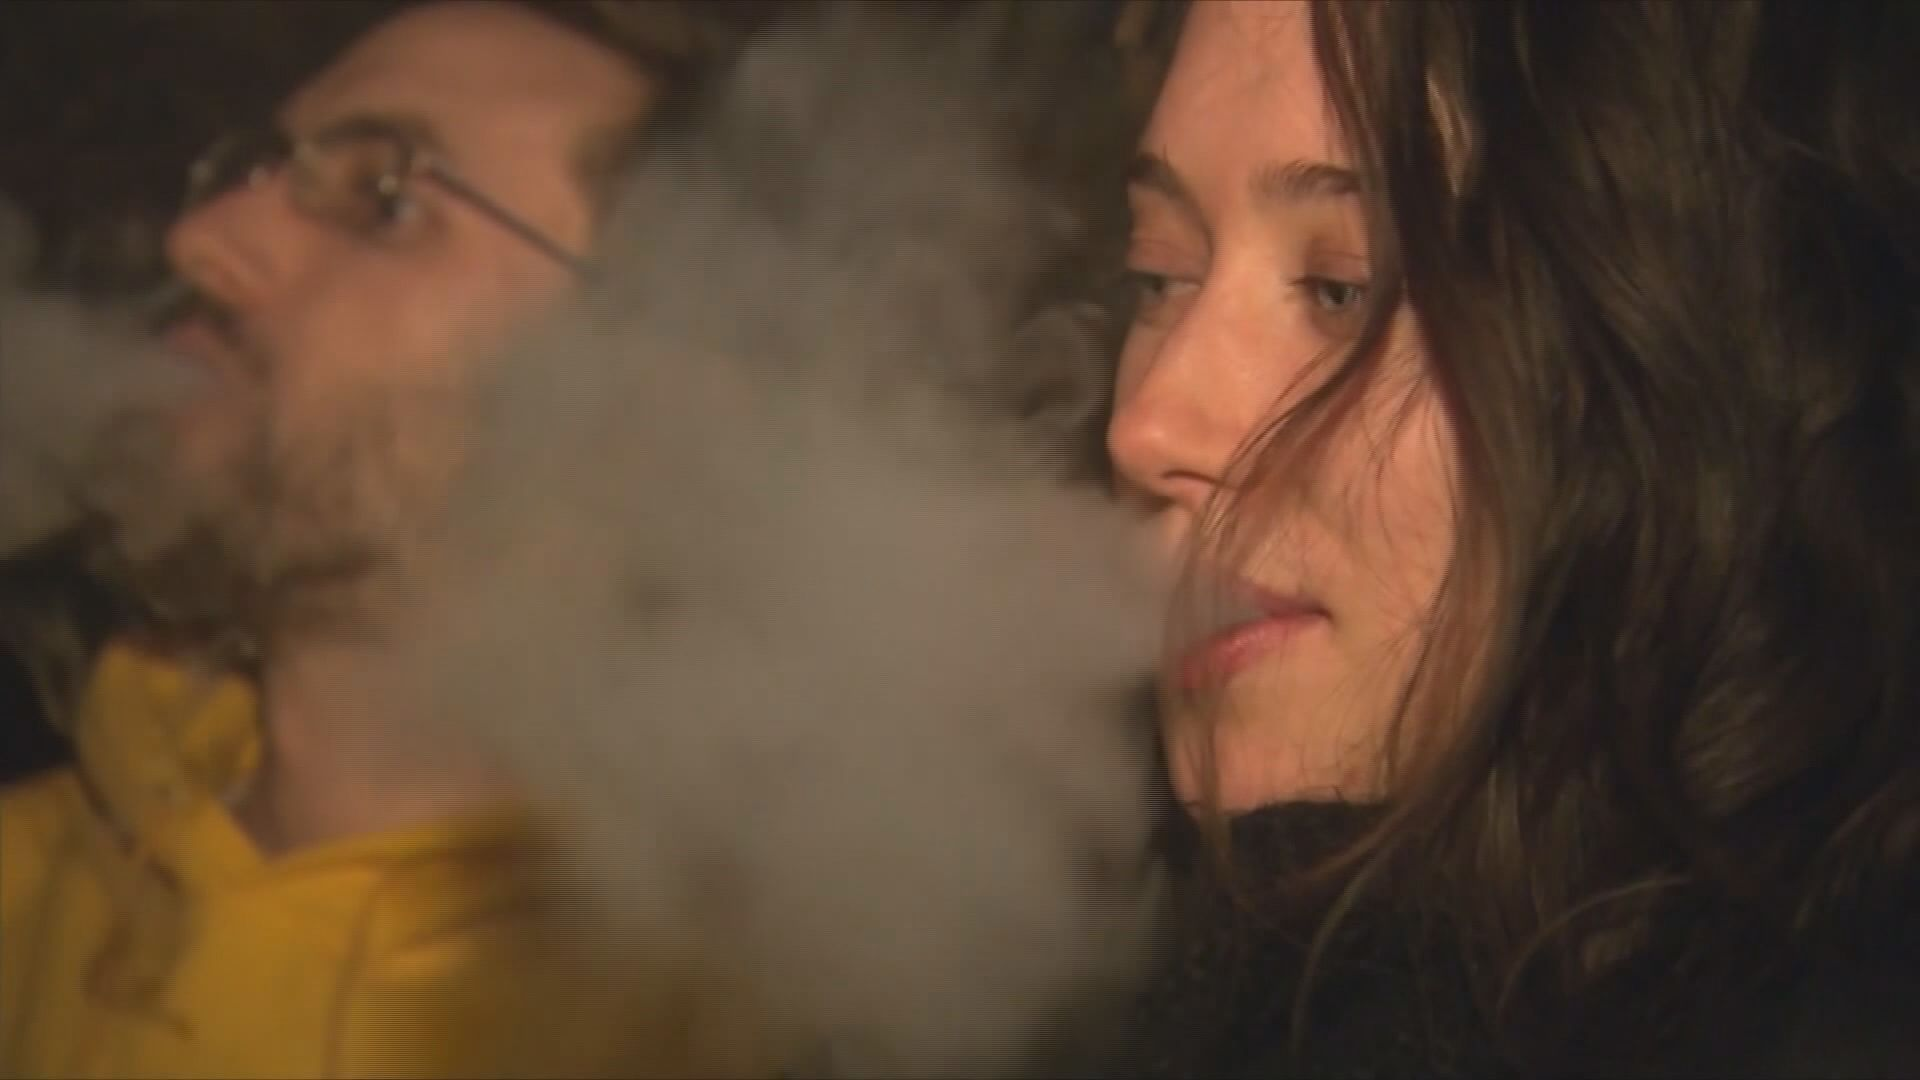 Vaping lung disease symptoms: Here's what the CDC says to watch out for